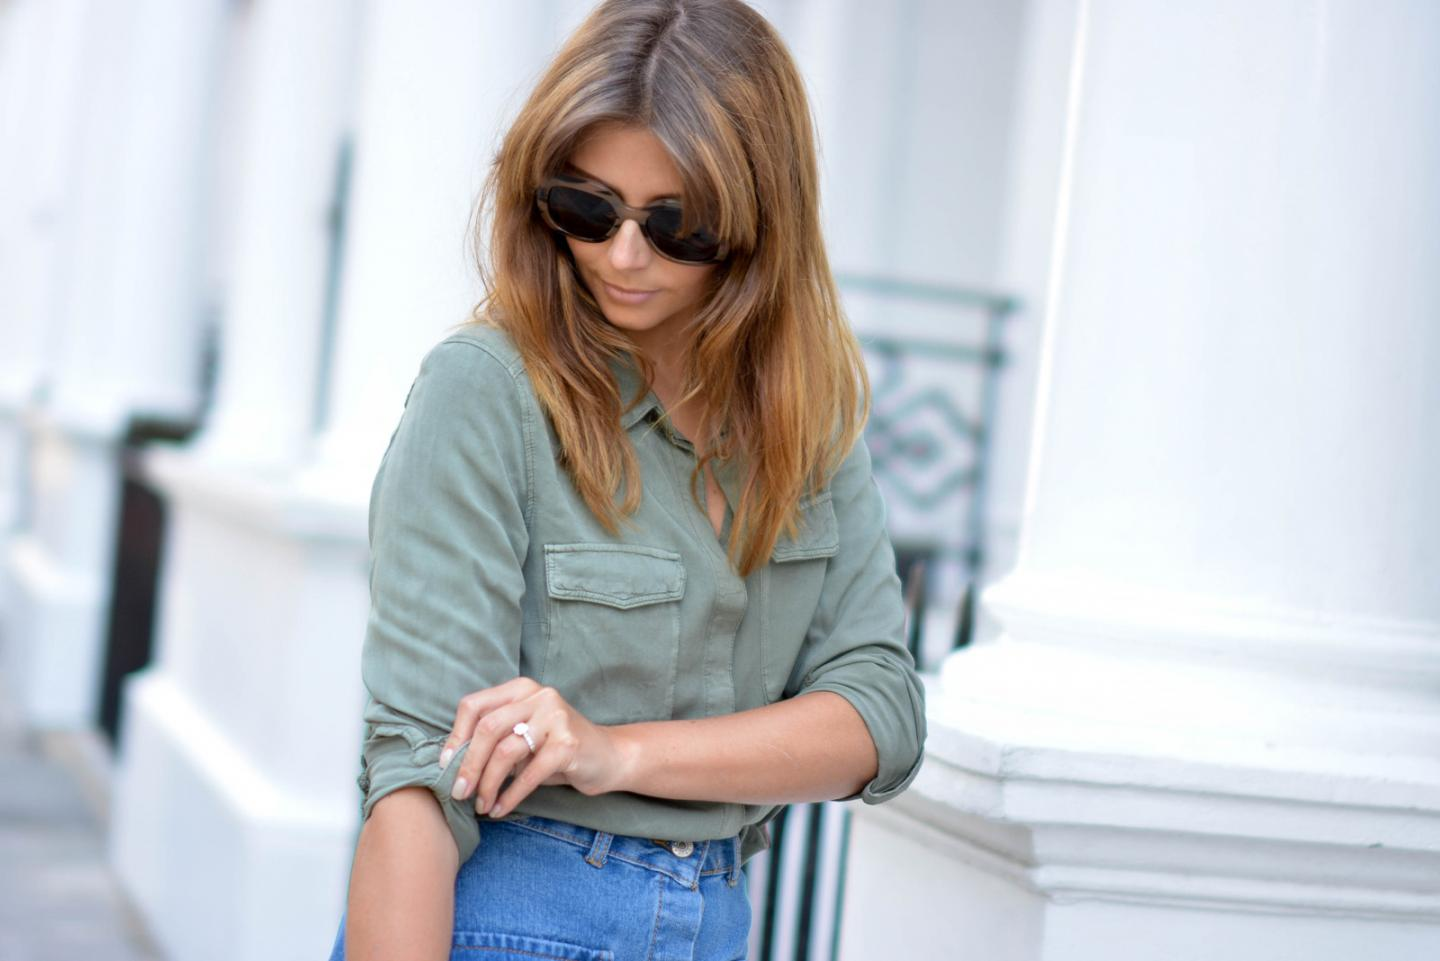 EJSTYLE - Emma Hill wears button up denim skirt with pockets with a khaki shirt and chunky sunglasses, how to dress for summer